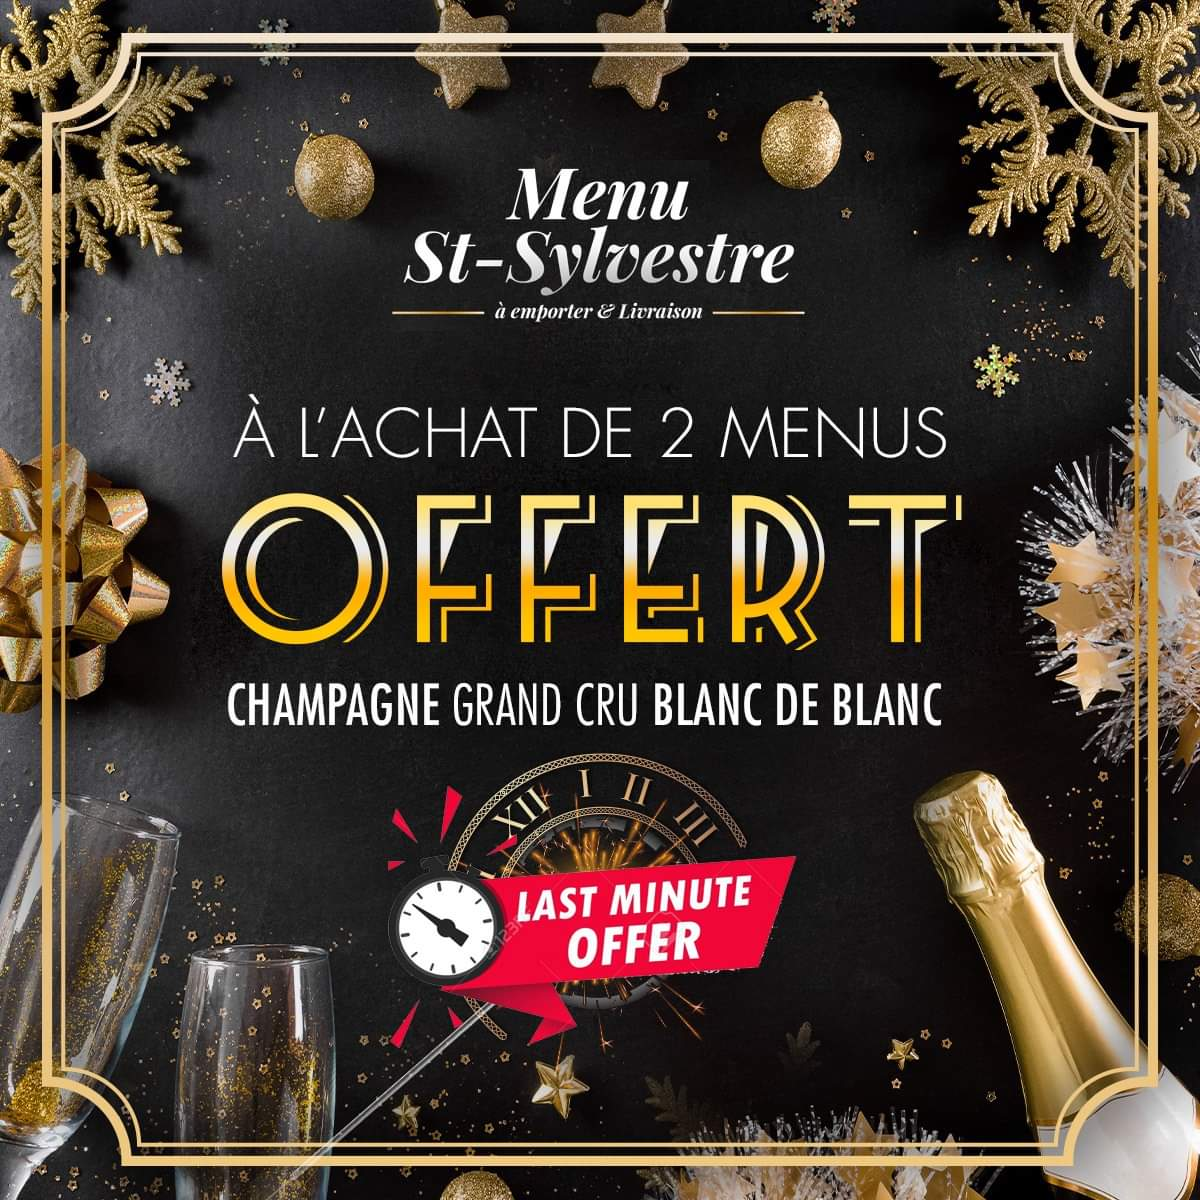 LAST MINUTE DEAL MENU DE LA SAINT-SYLVESTRE 2020/21